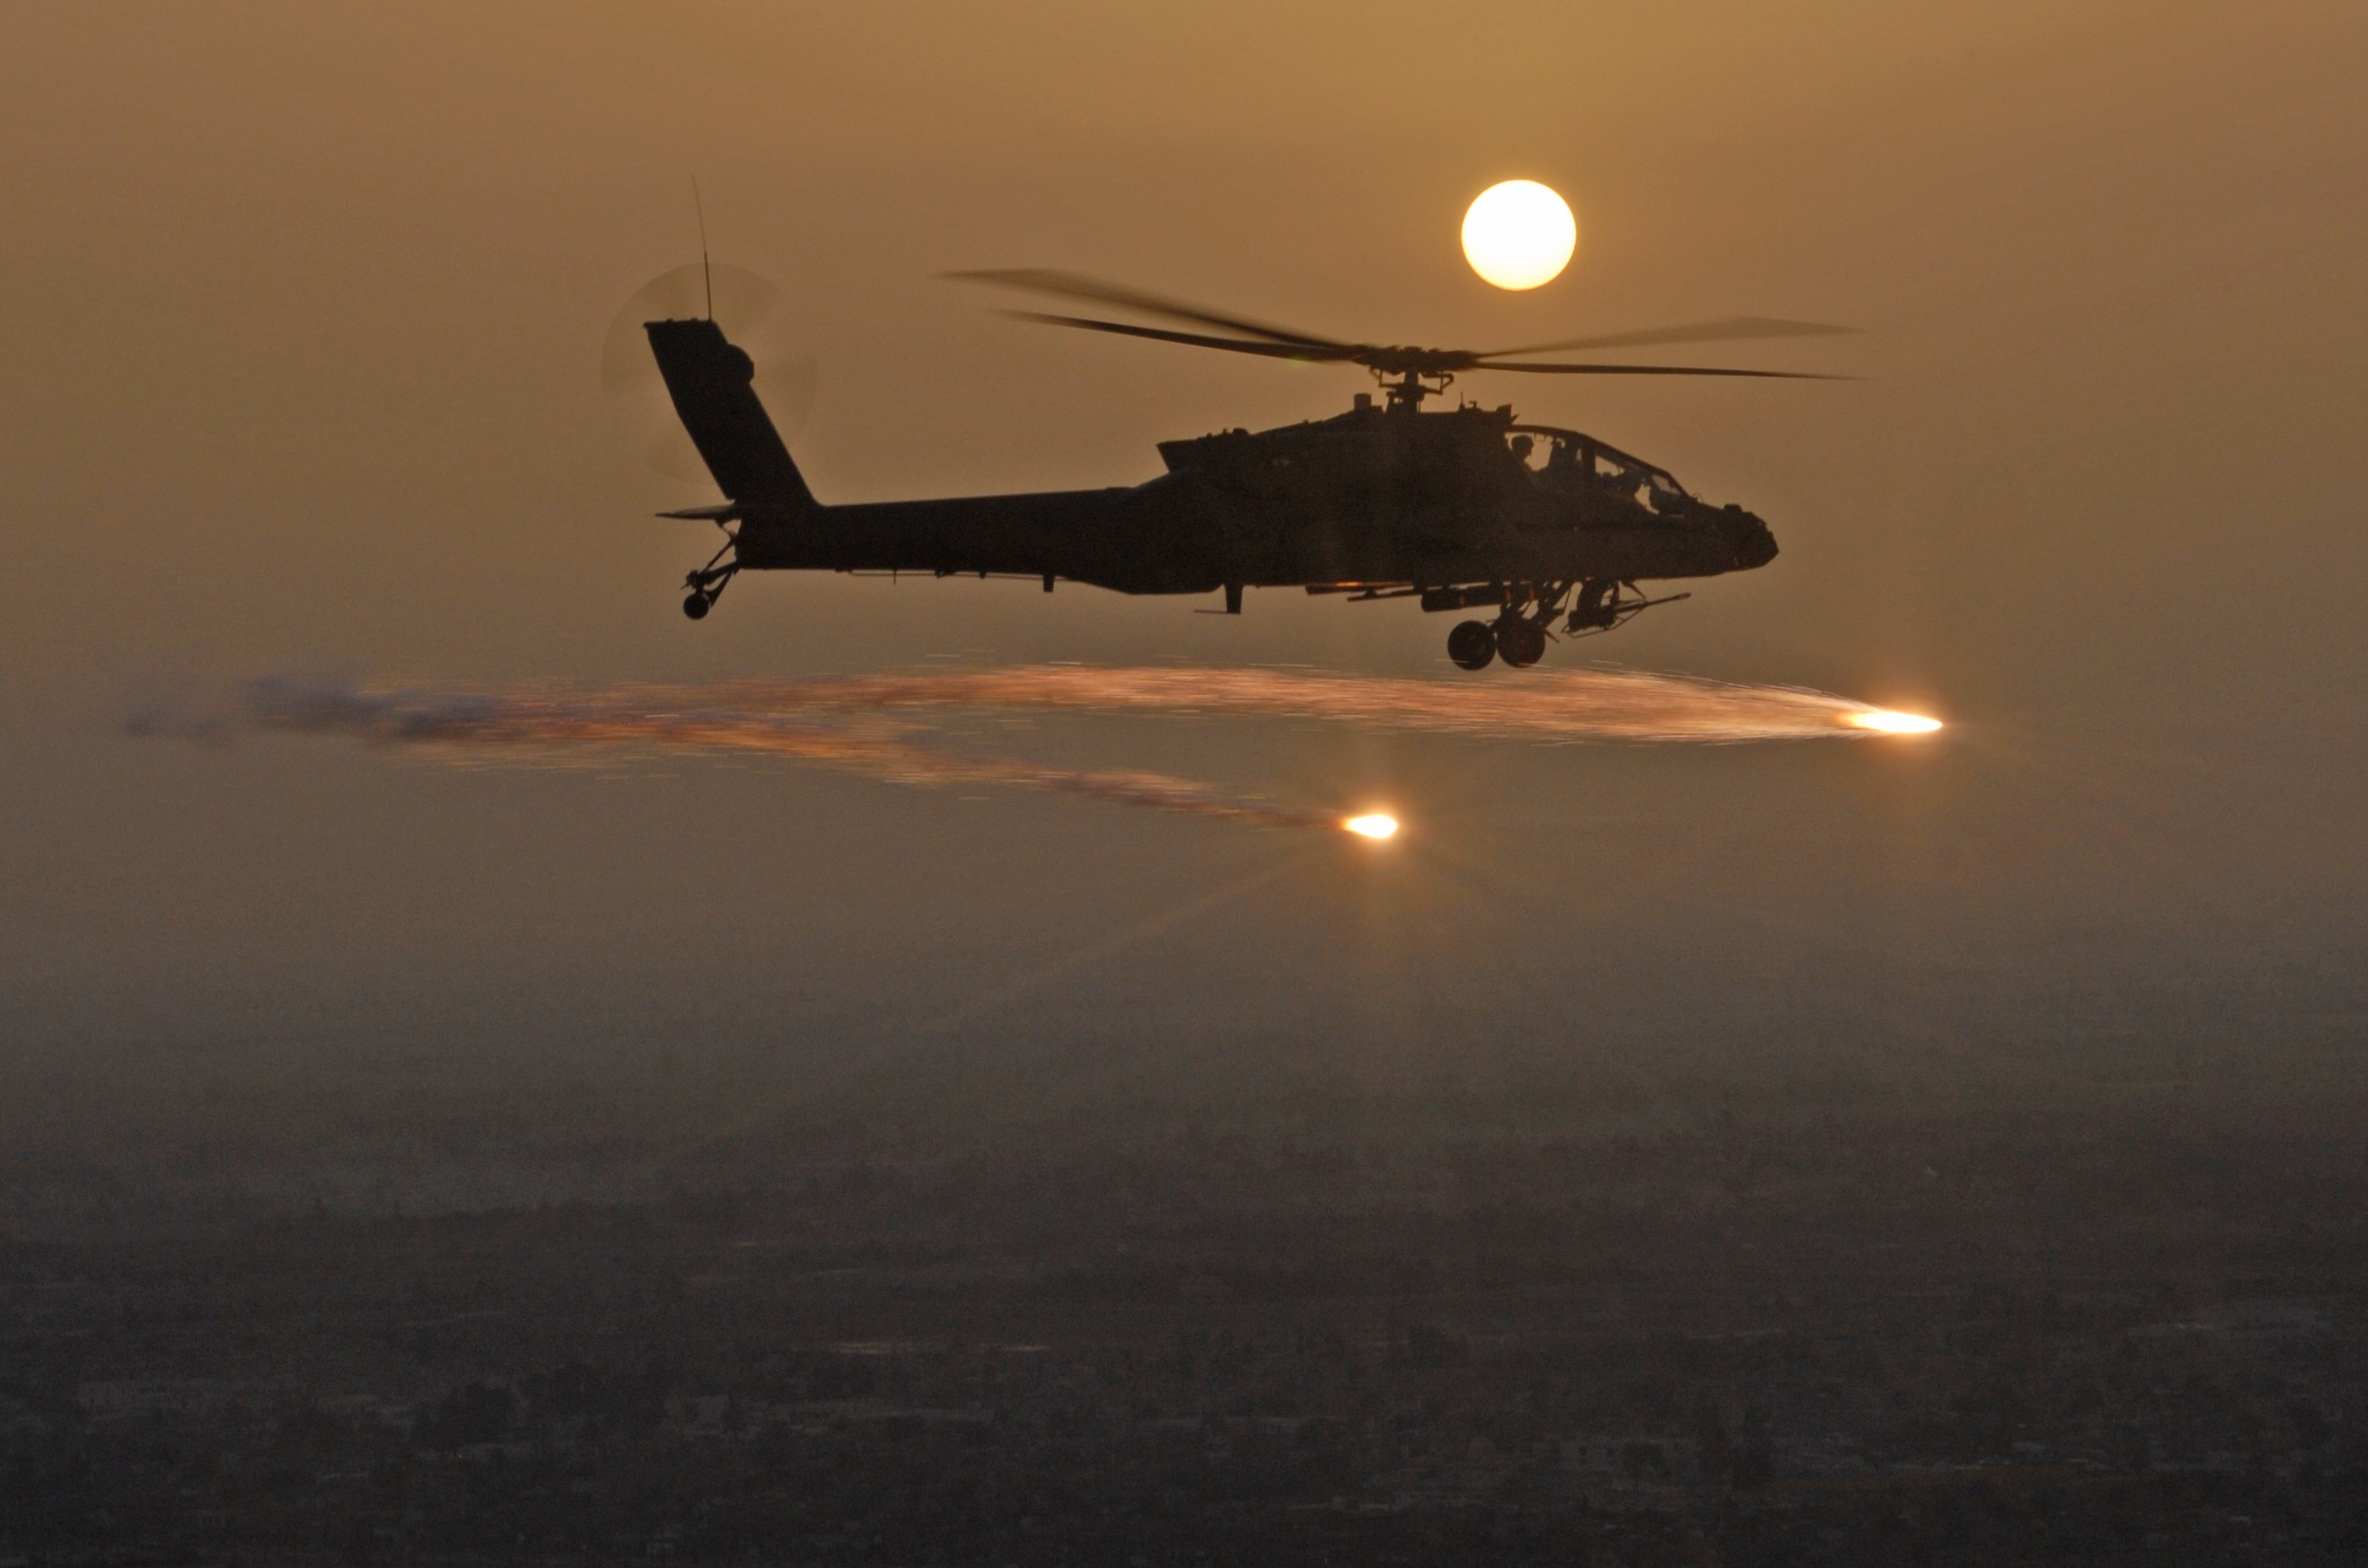 AH-64 Apache Helicopter Firing